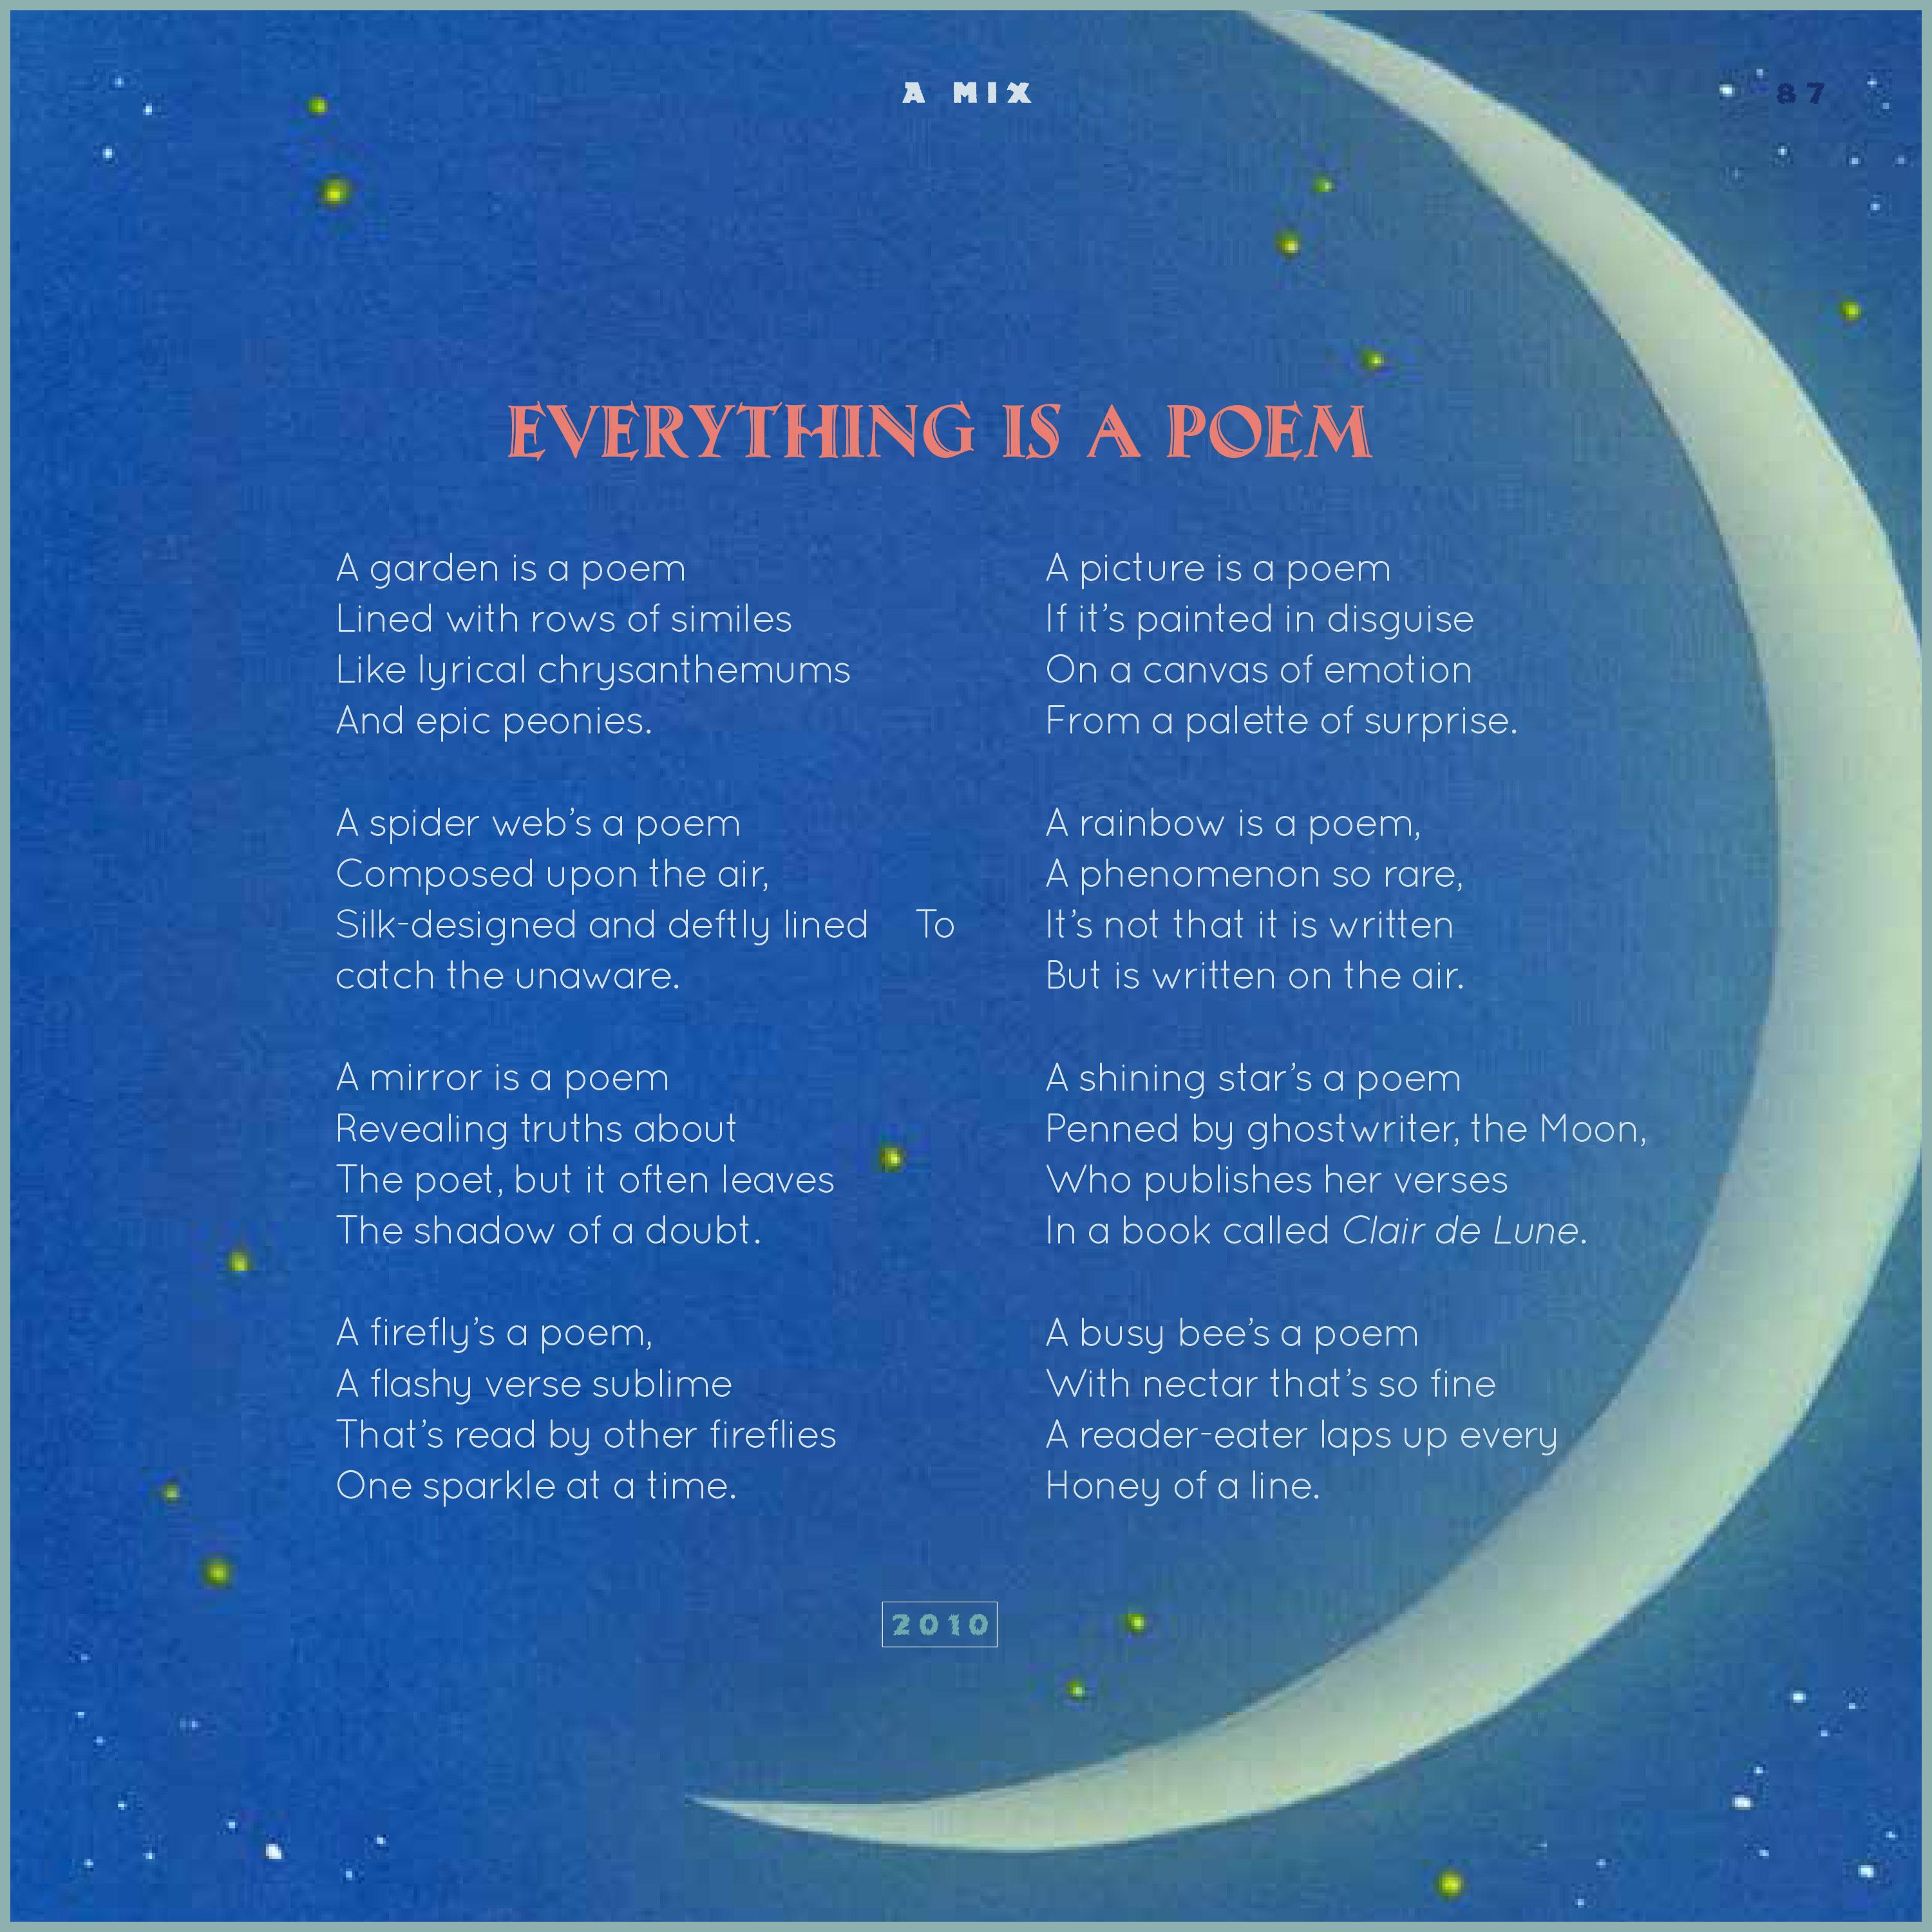 everything-is-a-poem-page